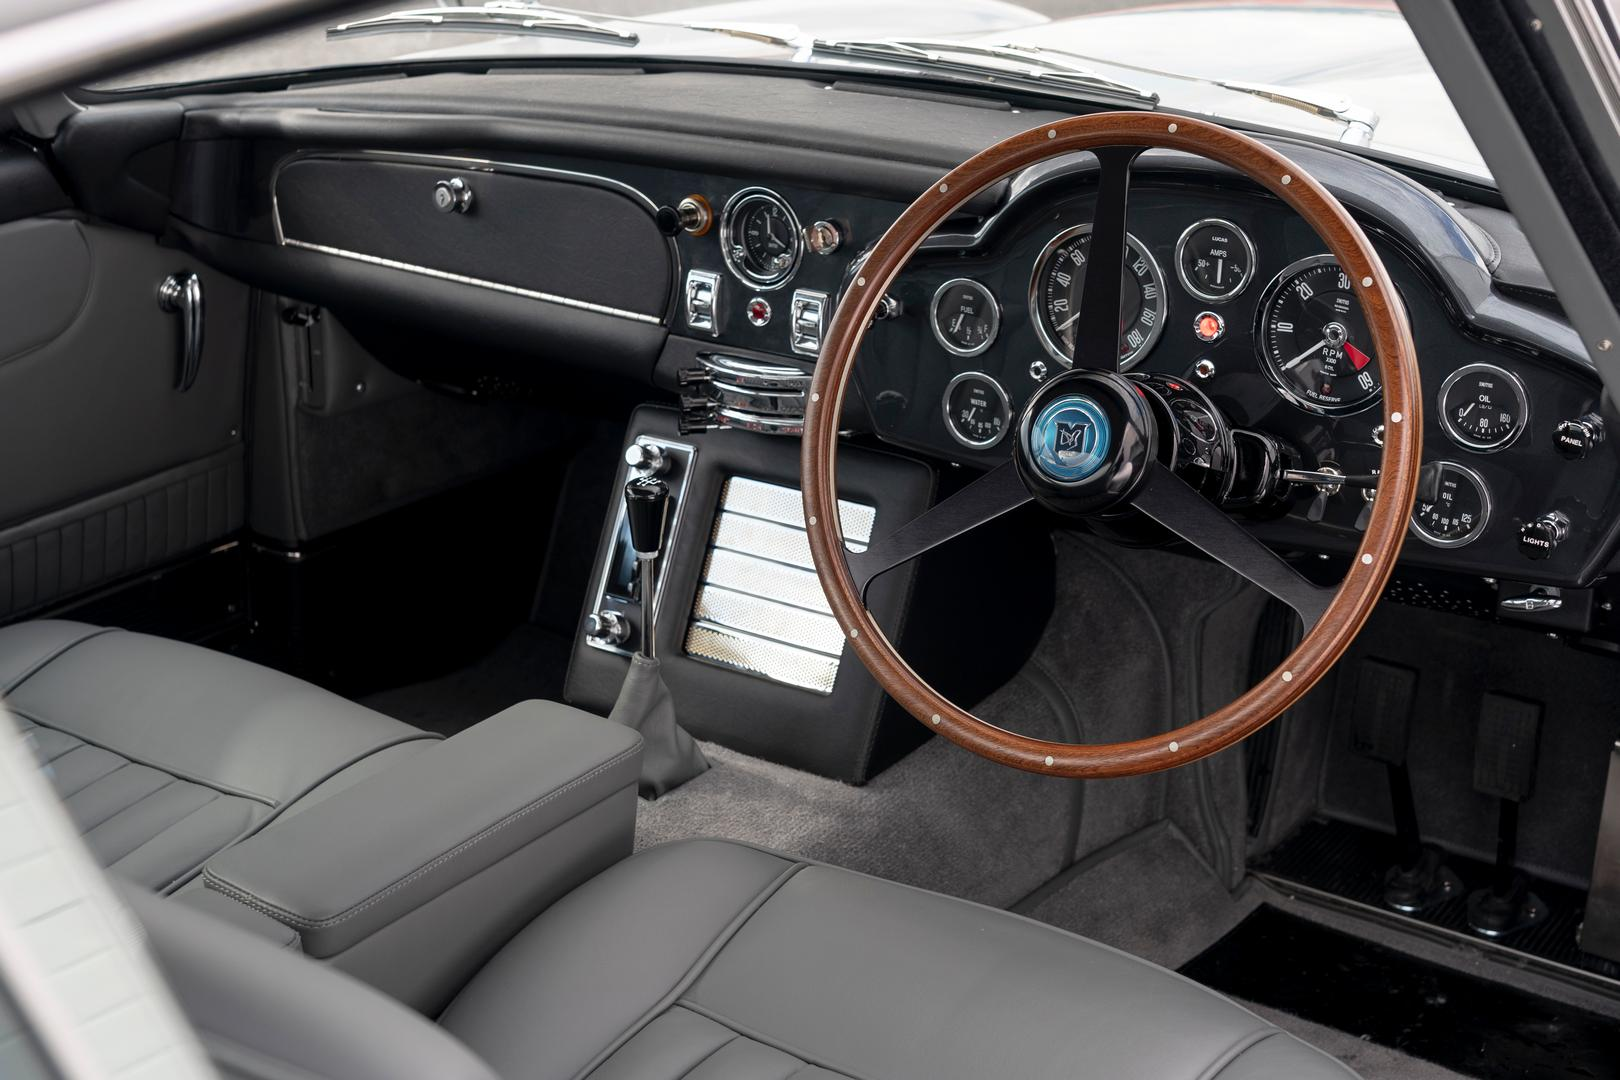 Aston Martin DB5 Interior